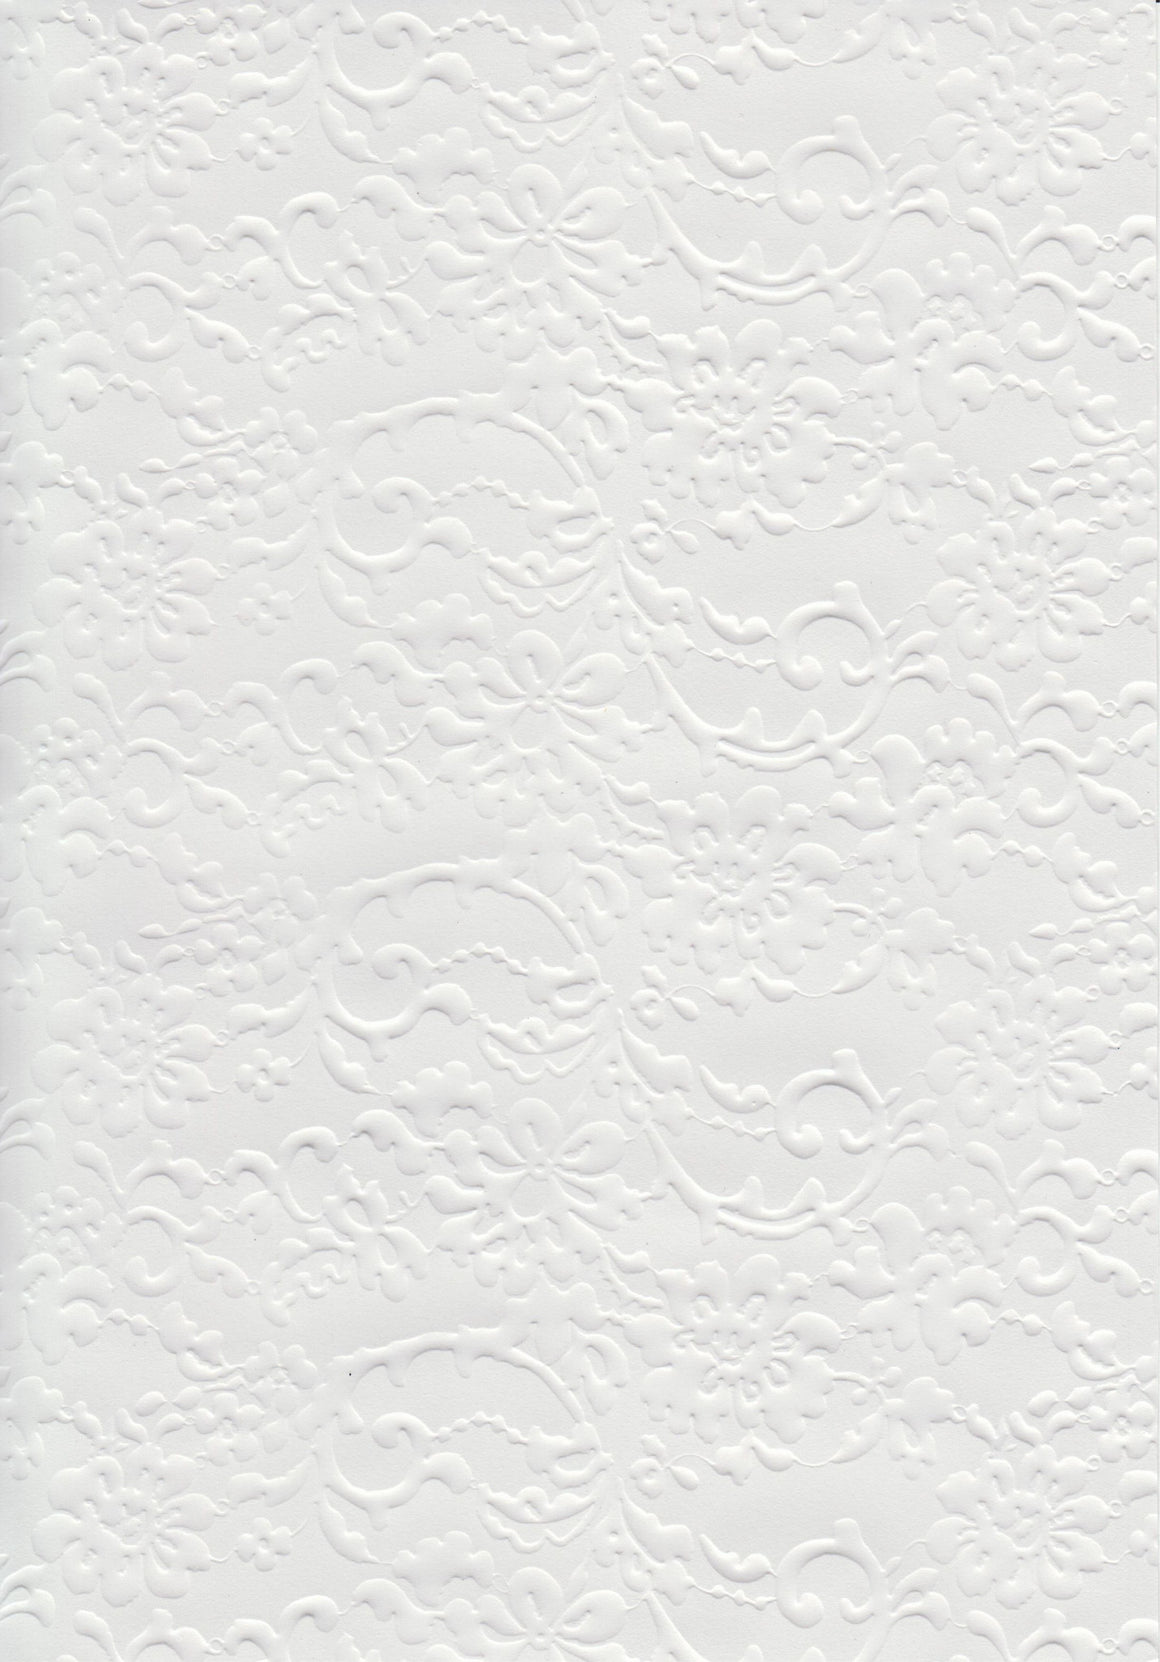 English Lace Pearl A4 Paper